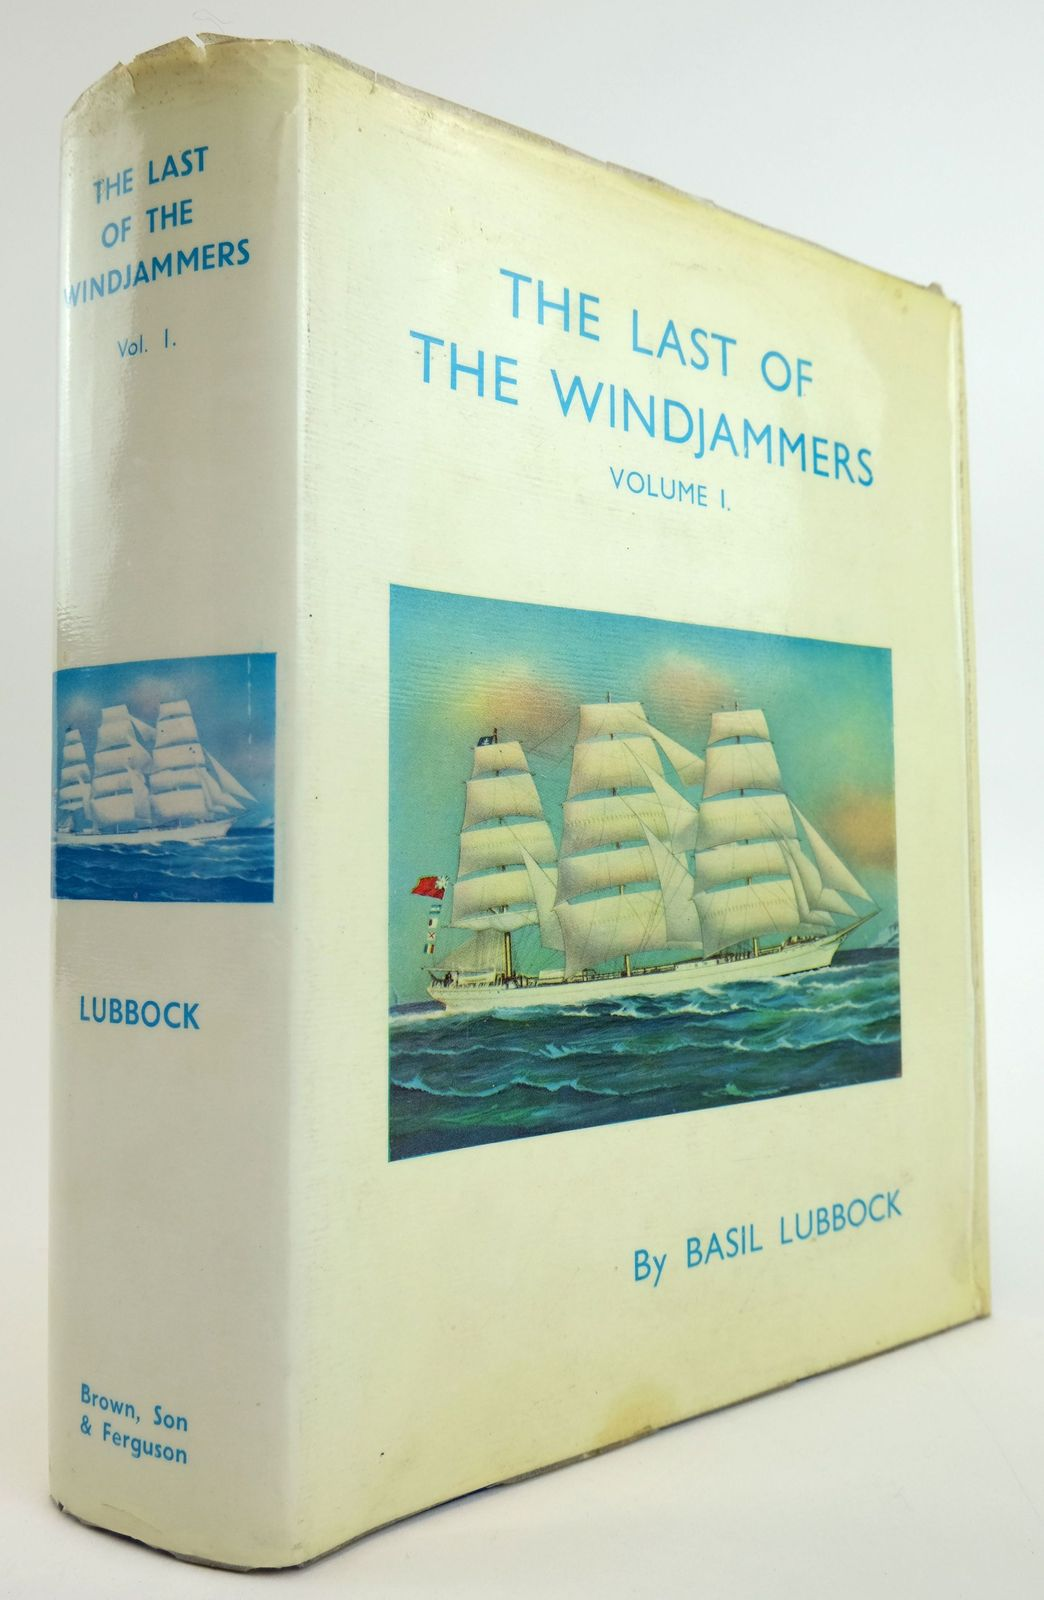 Photo of THE LAST OF THE WINDJAMMERS VOLUME 1 written by Lubbock, Basil published by Brown, Son & Ferguson Ltd. (STOCK CODE: 1820020)  for sale by Stella & Rose's Books